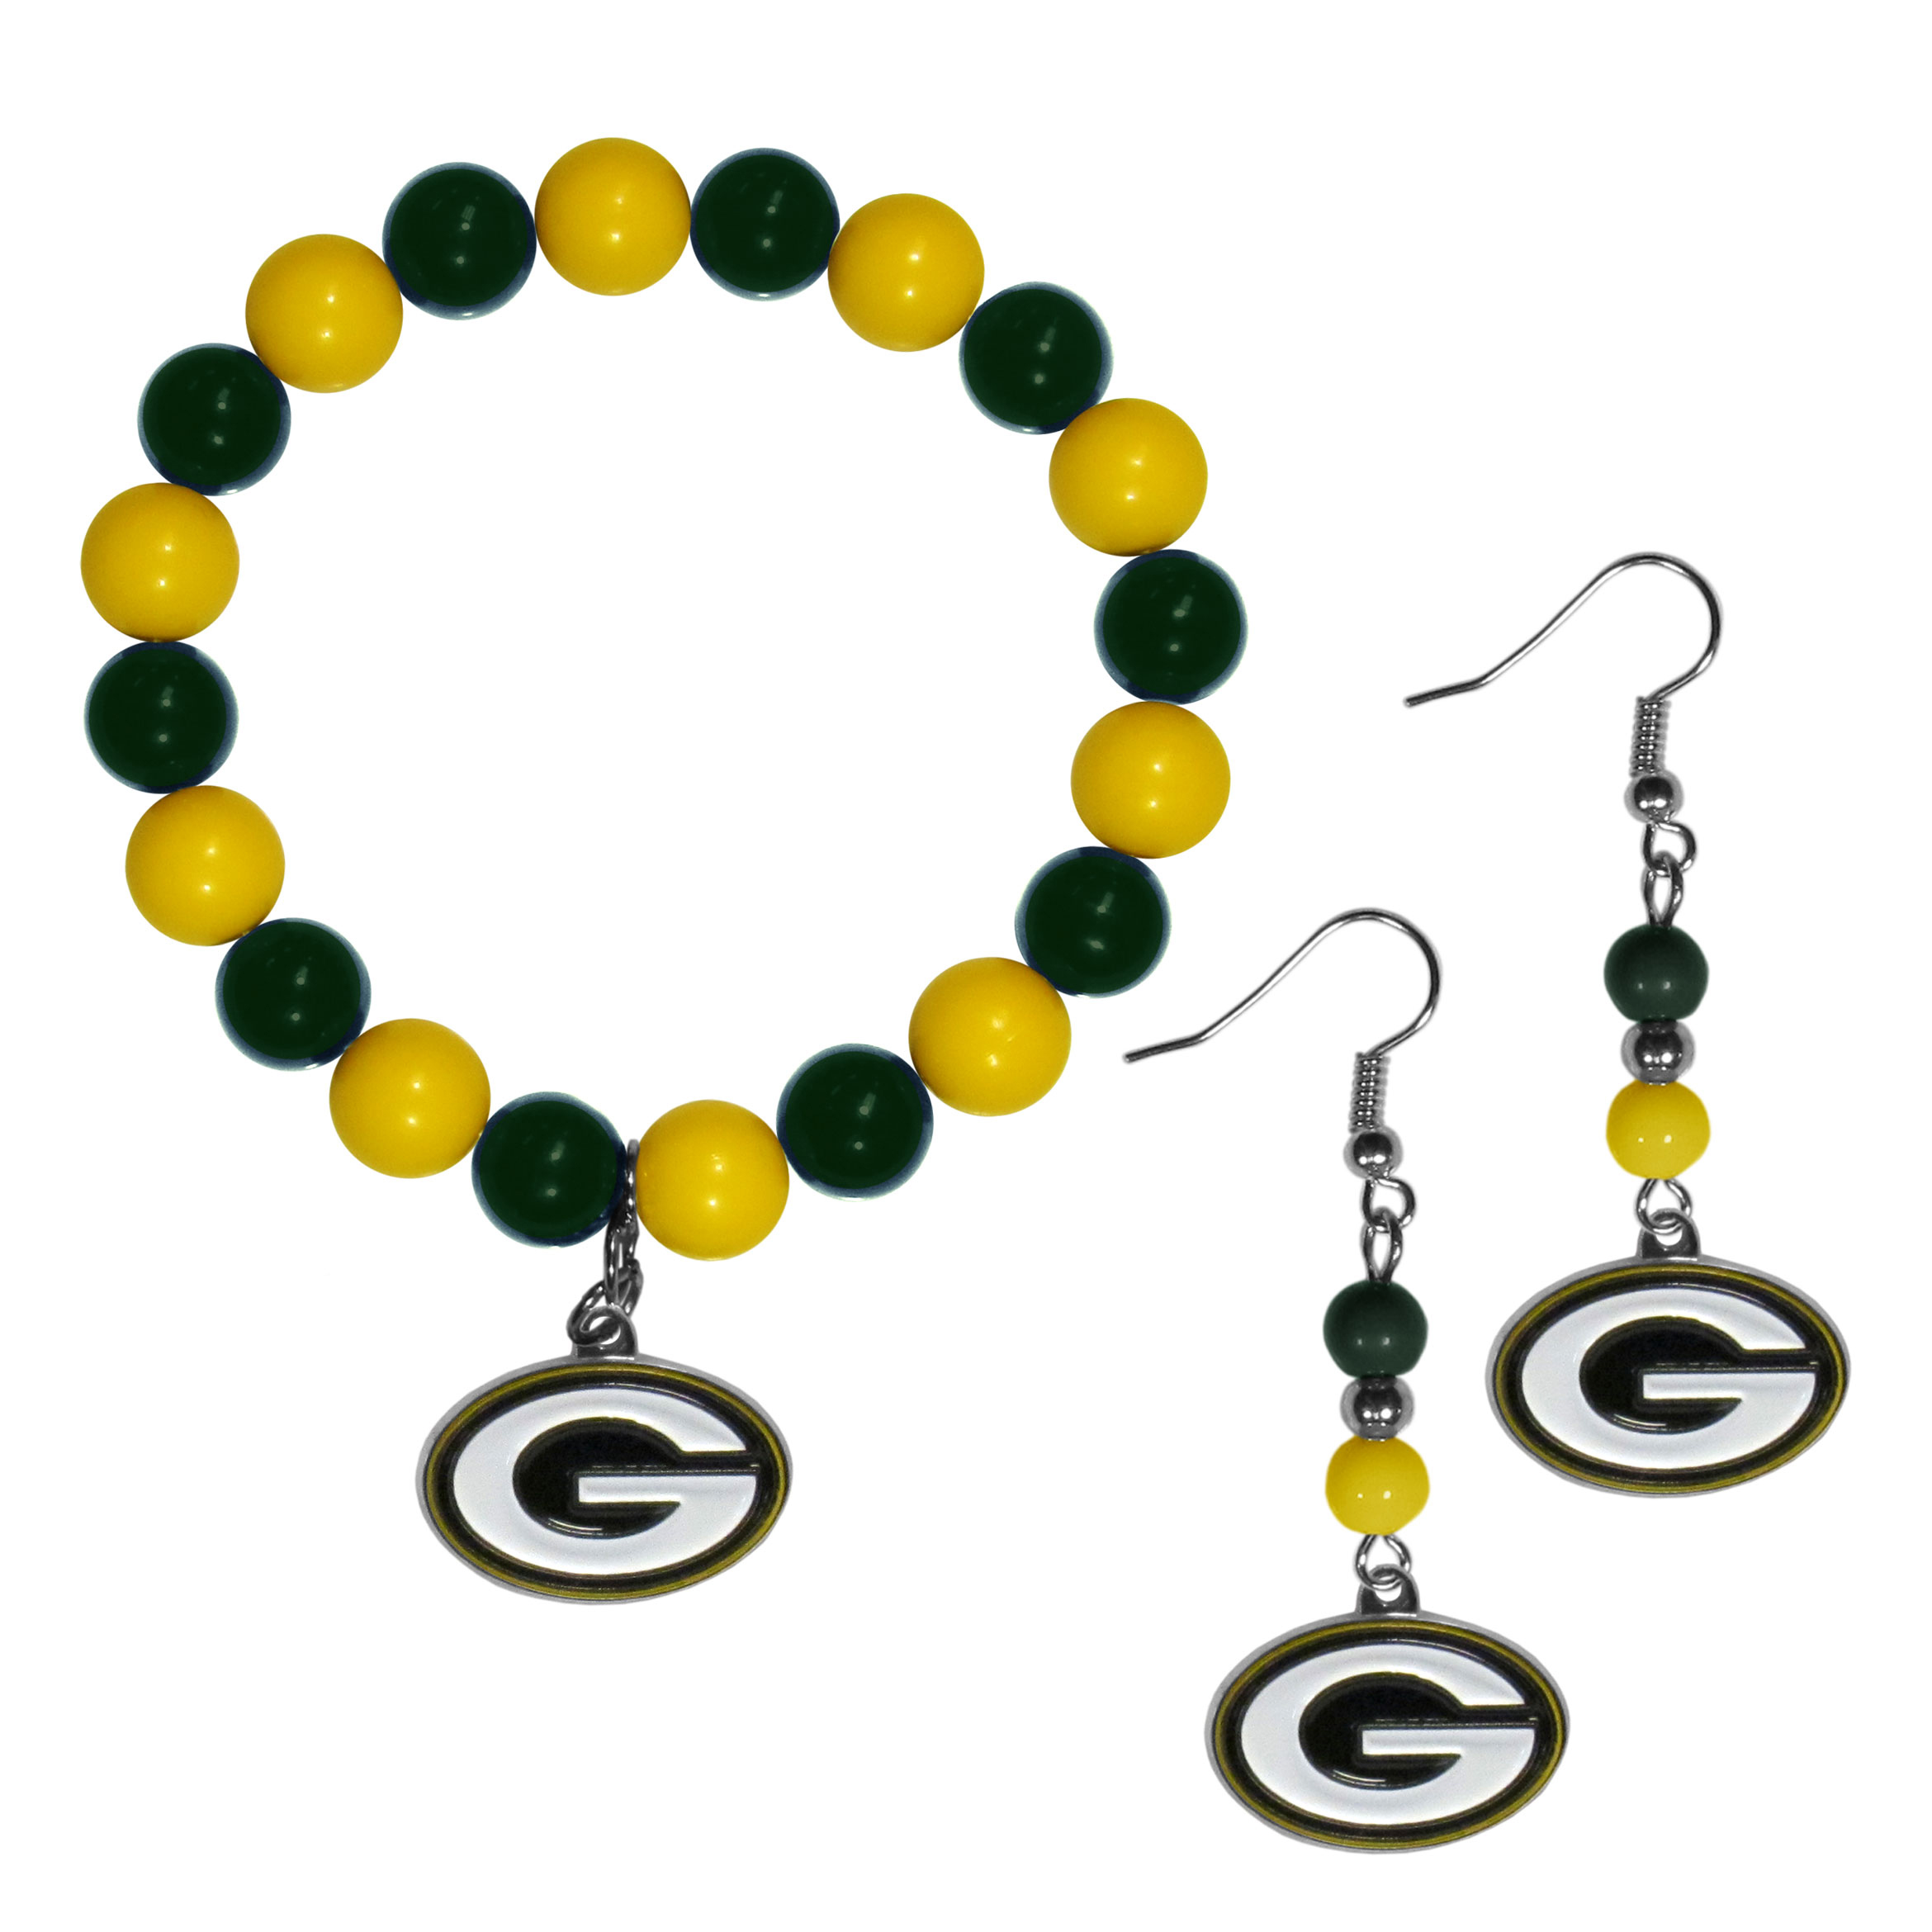 Green Bay Packers Fan Bead Earrings and Bracelet Set - This fun and colorful Green Bay Packers fan bead jewelry set is fun and casual with eye-catching beads in bright team colors. The fashionable dangle earrings feature a team colored beads that drop down to a carved and enameled charm. The stretch bracelet has larger matching beads that make a striking statement and have a matching team charm. These sassy yet sporty jewelry pieces make a perfect gift for any female fan. Spice up your game-day outfit with these fun colorful earrings and bracelet that are also cute enough for any day.